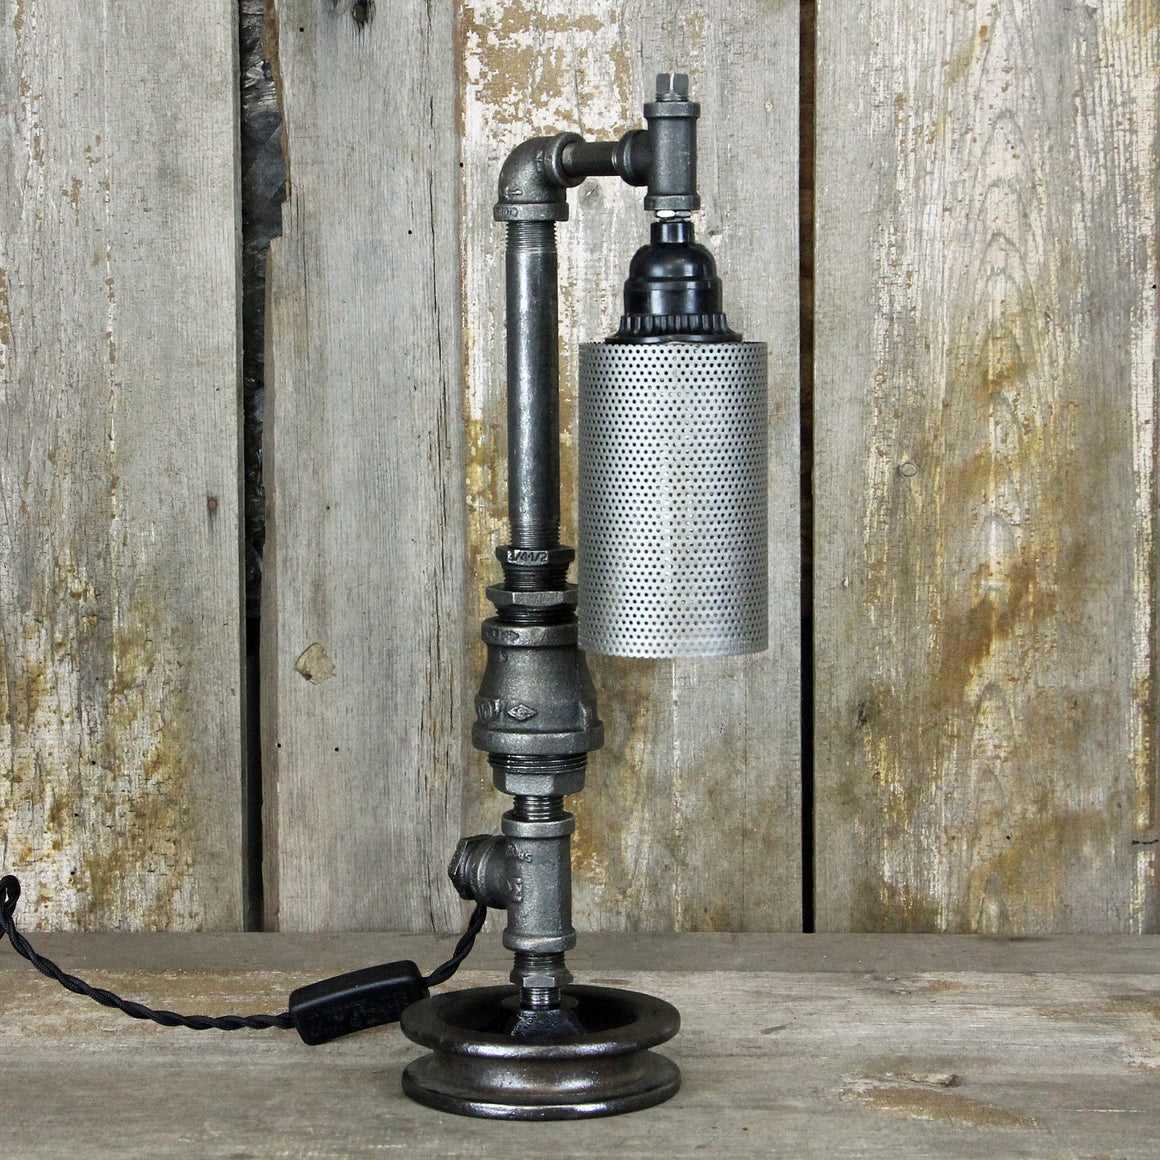 Industrial Table Lamp with a Sleek Steampunk Design No. 2012 - The Lighting Works